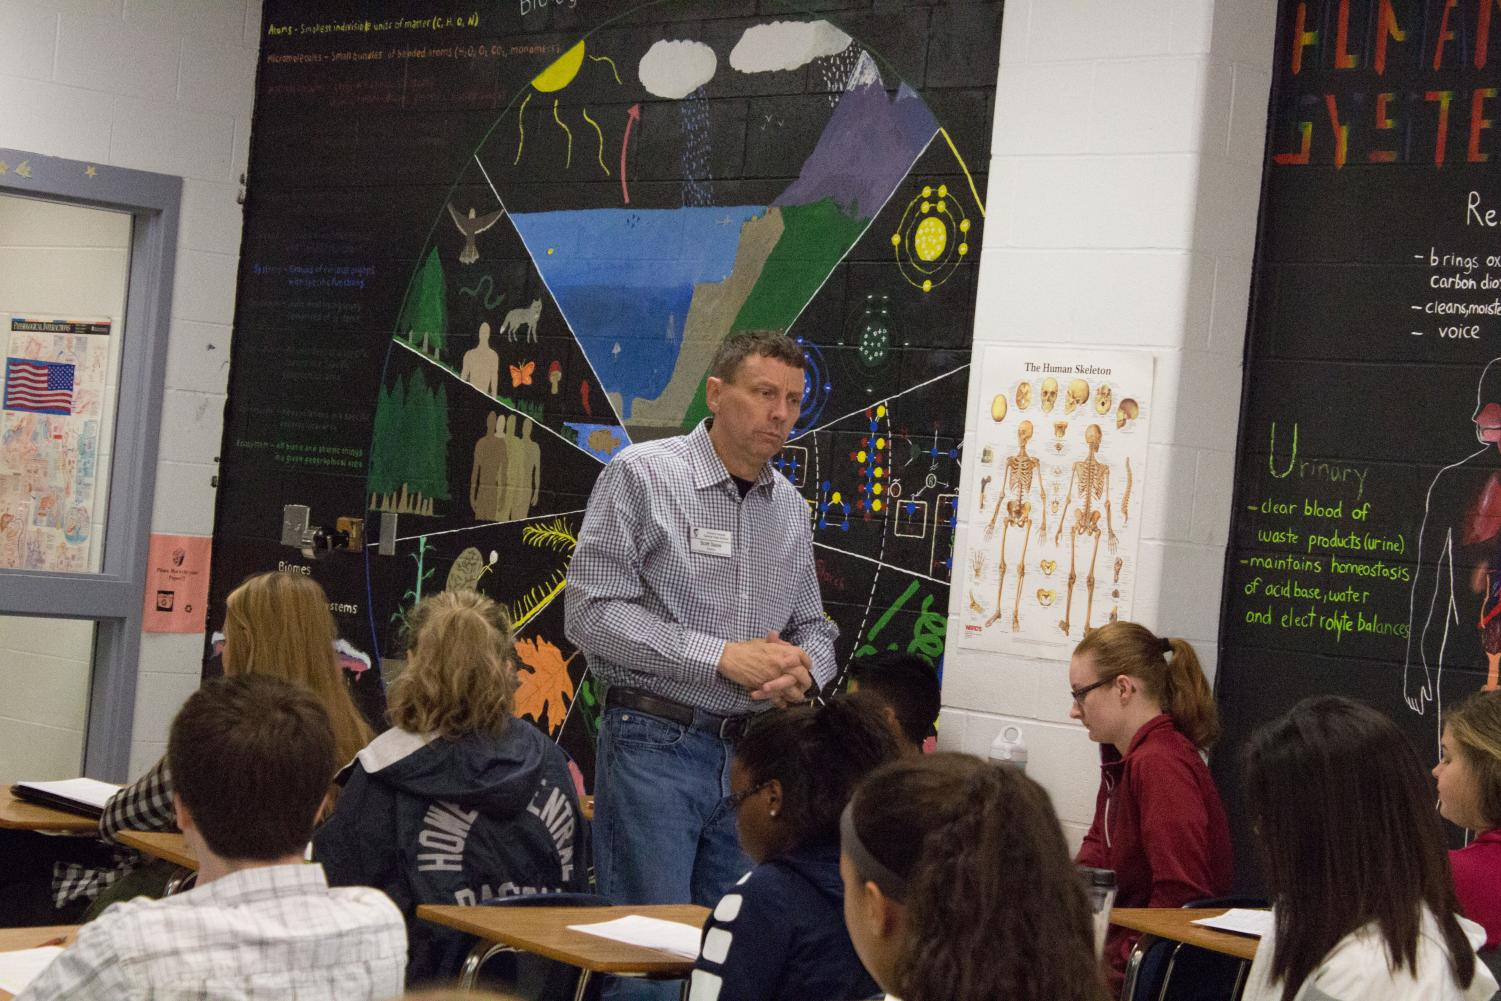 Mr. Scott Dauve teaches the anatomy classes. He's been teaching here and impacting students since the school opened.